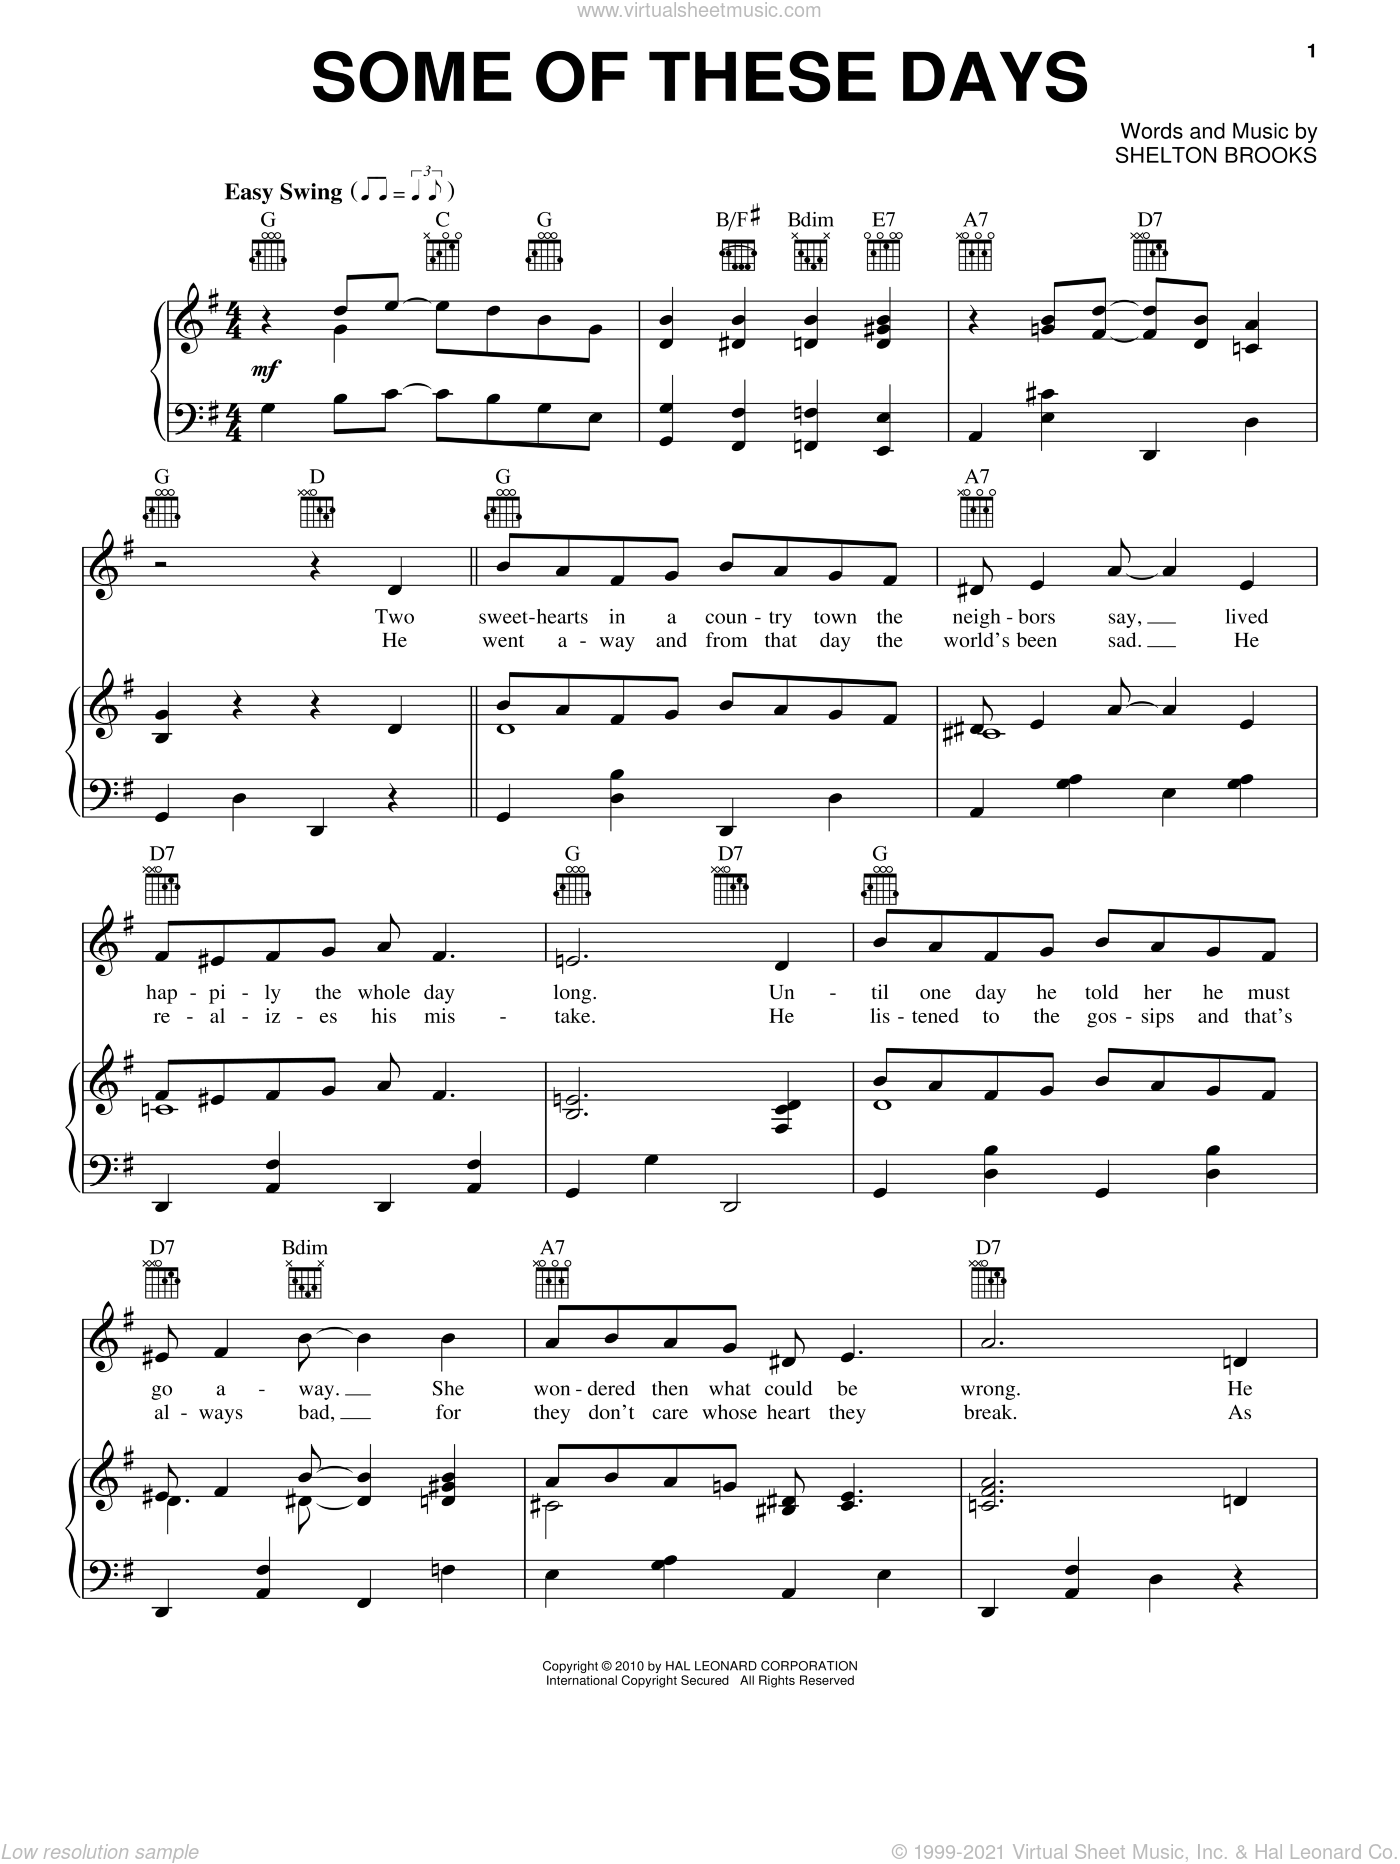 Some Of These Days sheet music for voice, piano or guitar by Sophie Tucker and Shelton Brooks, intermediate